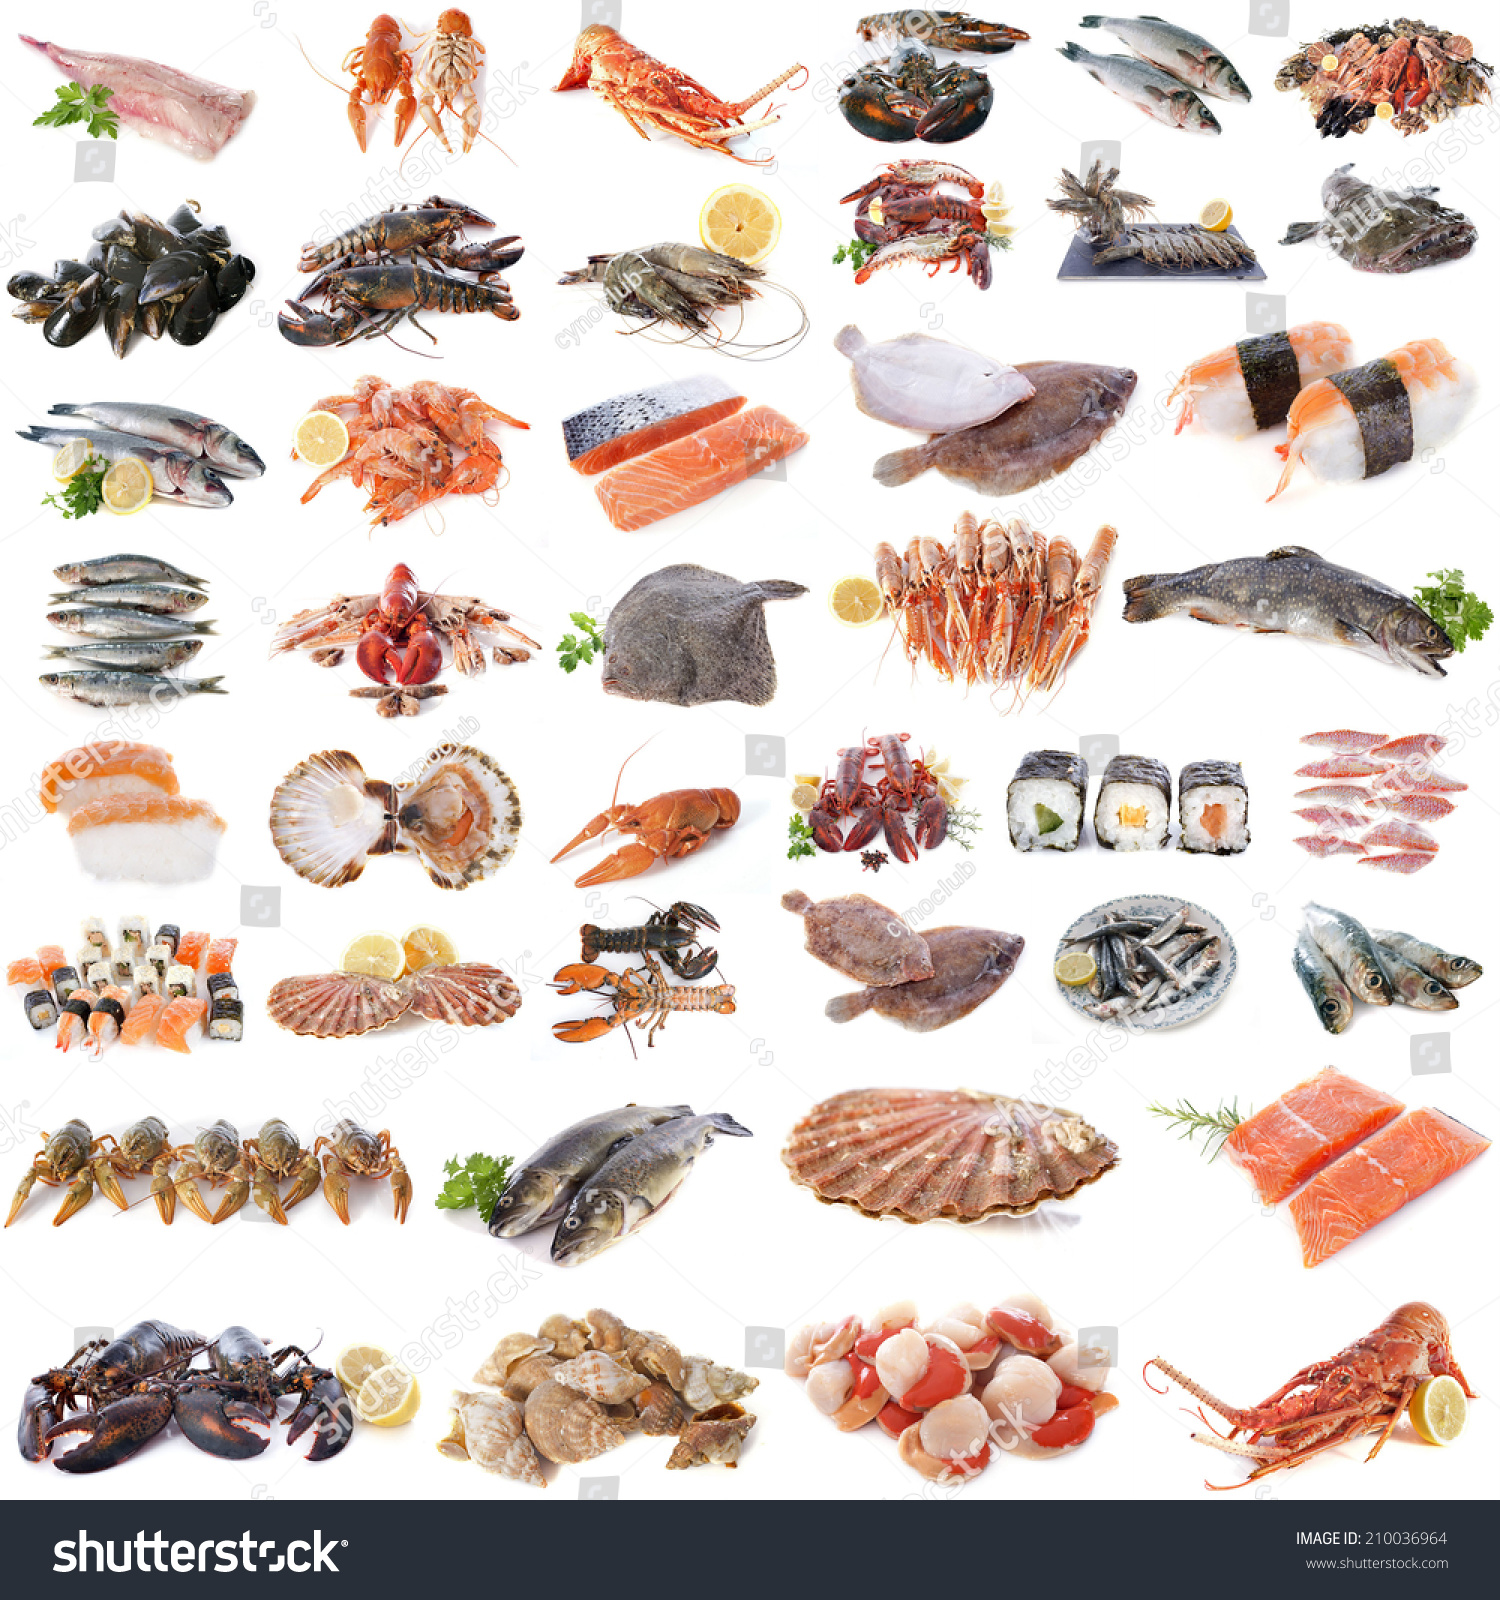 Seafood Fish Shellfish Front White Background Stock Photo ...